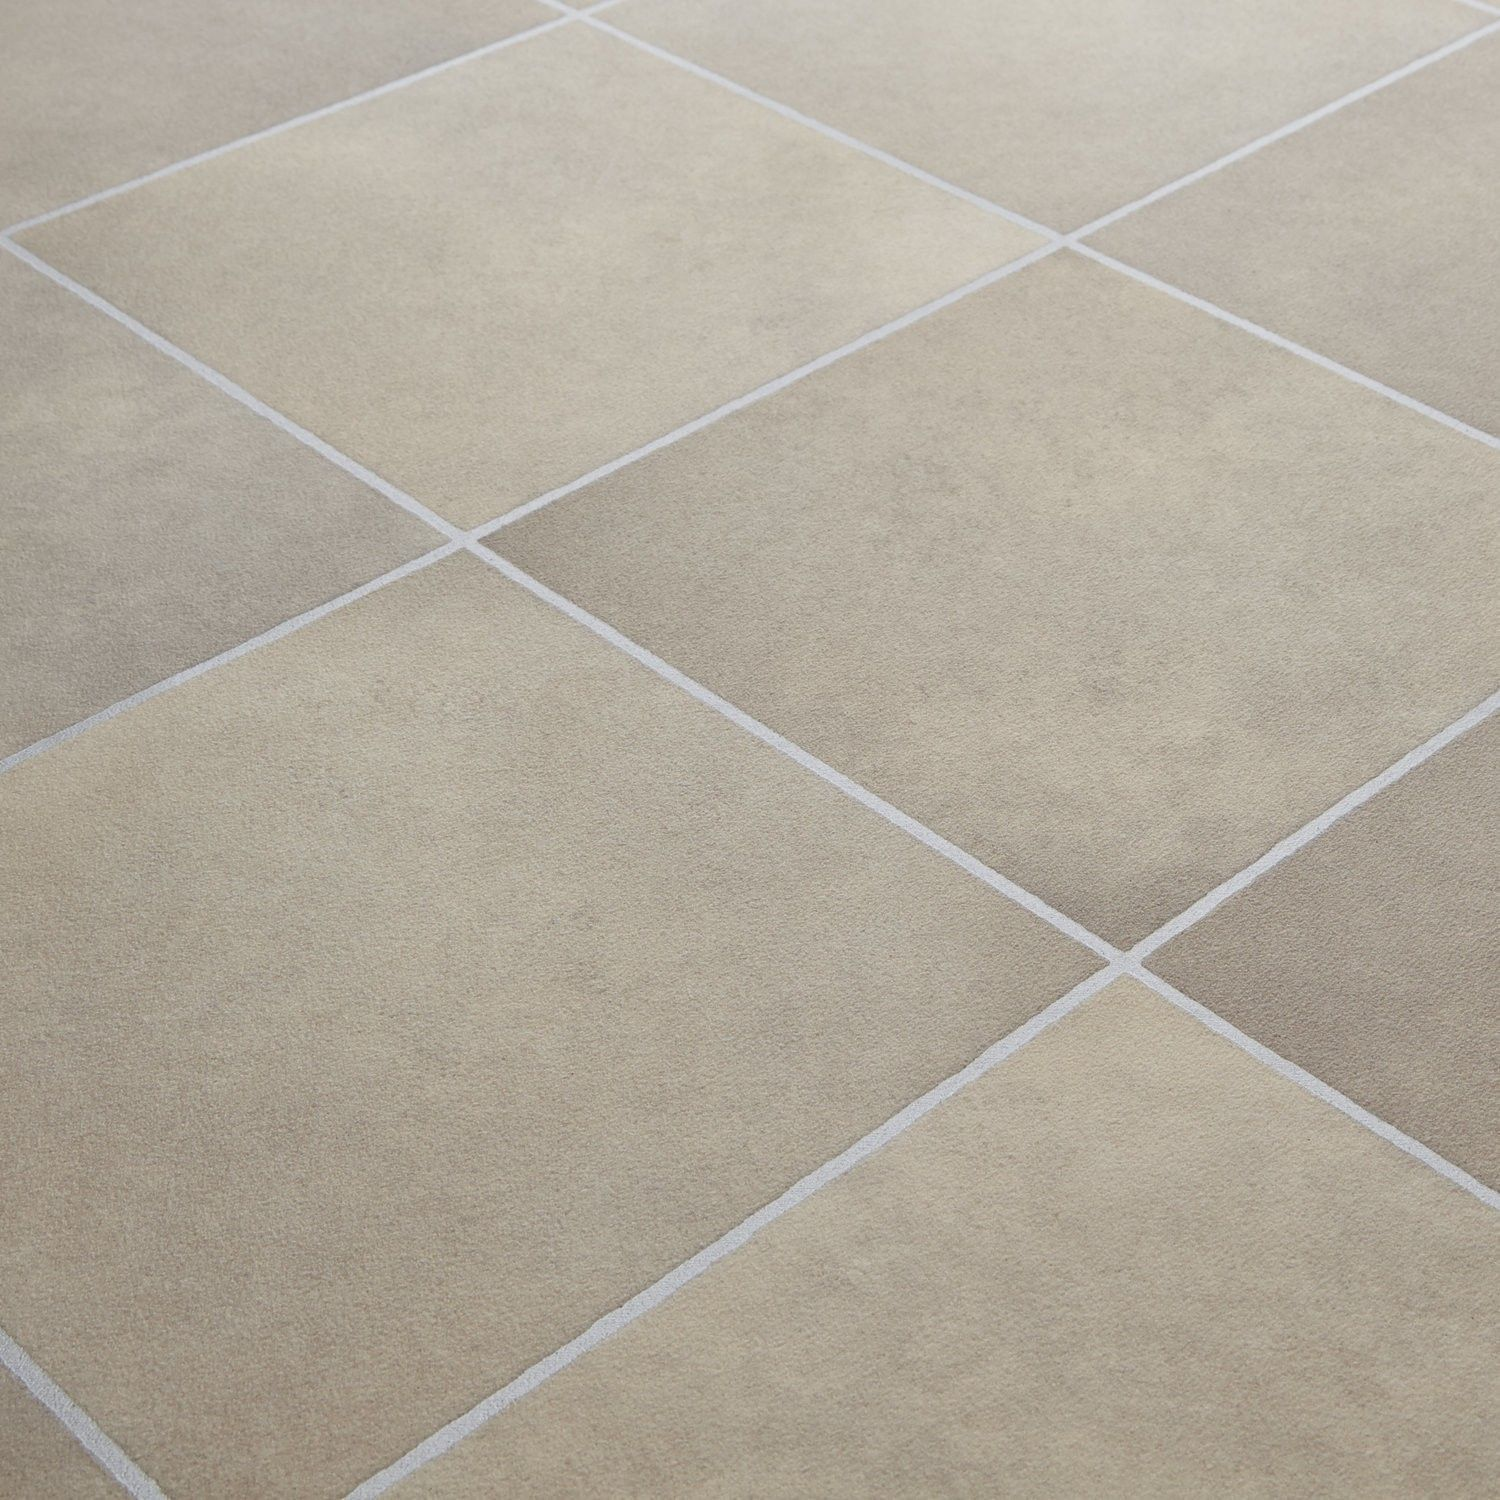 Mardi gras 535 durango stone tile effect vinyl for Lino flooring wood effect